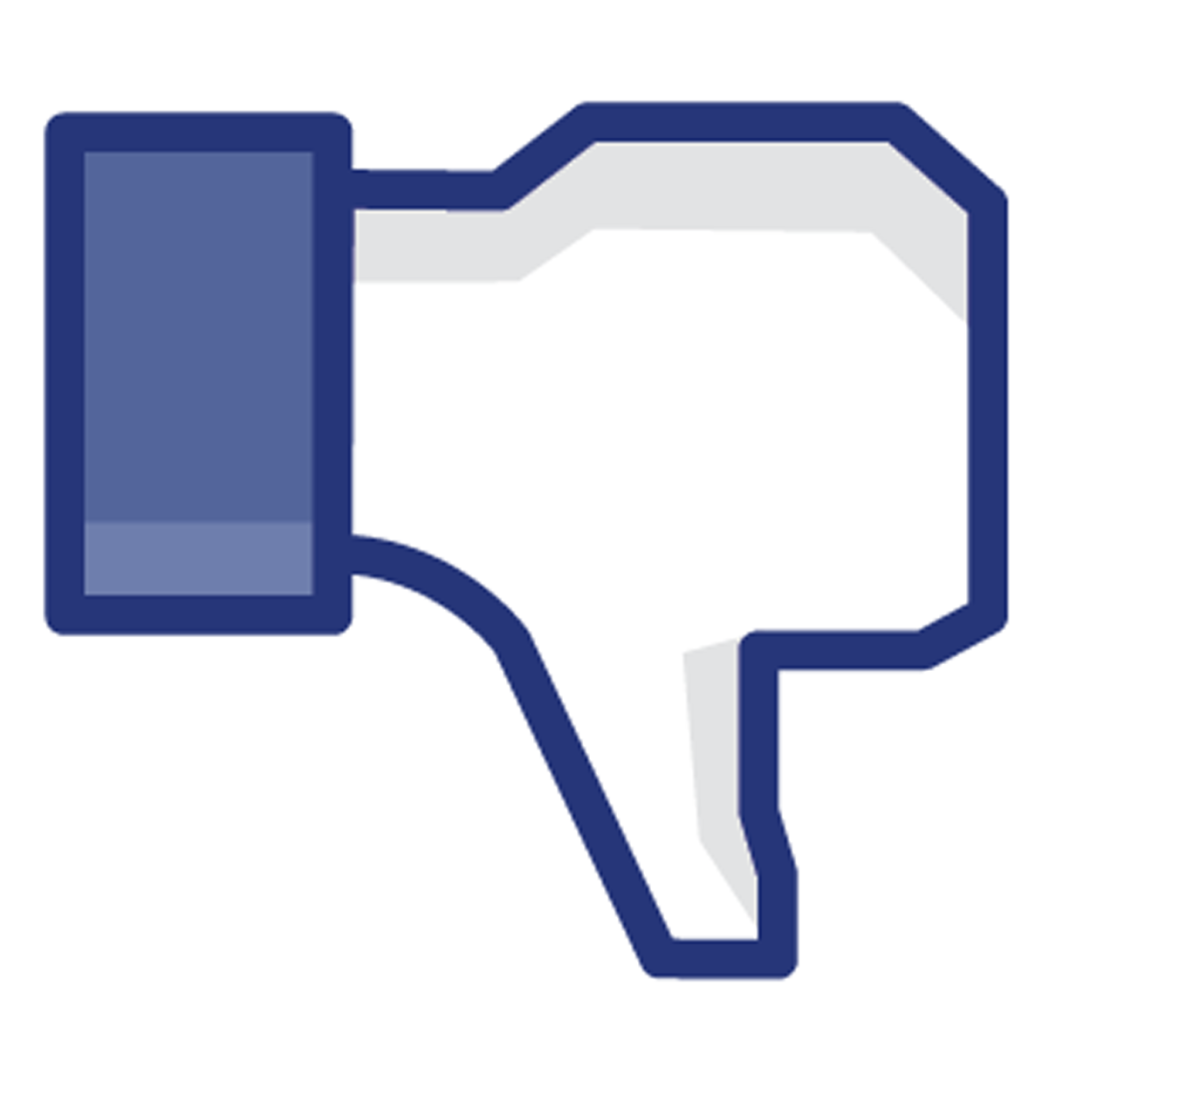 facebook popularity declining